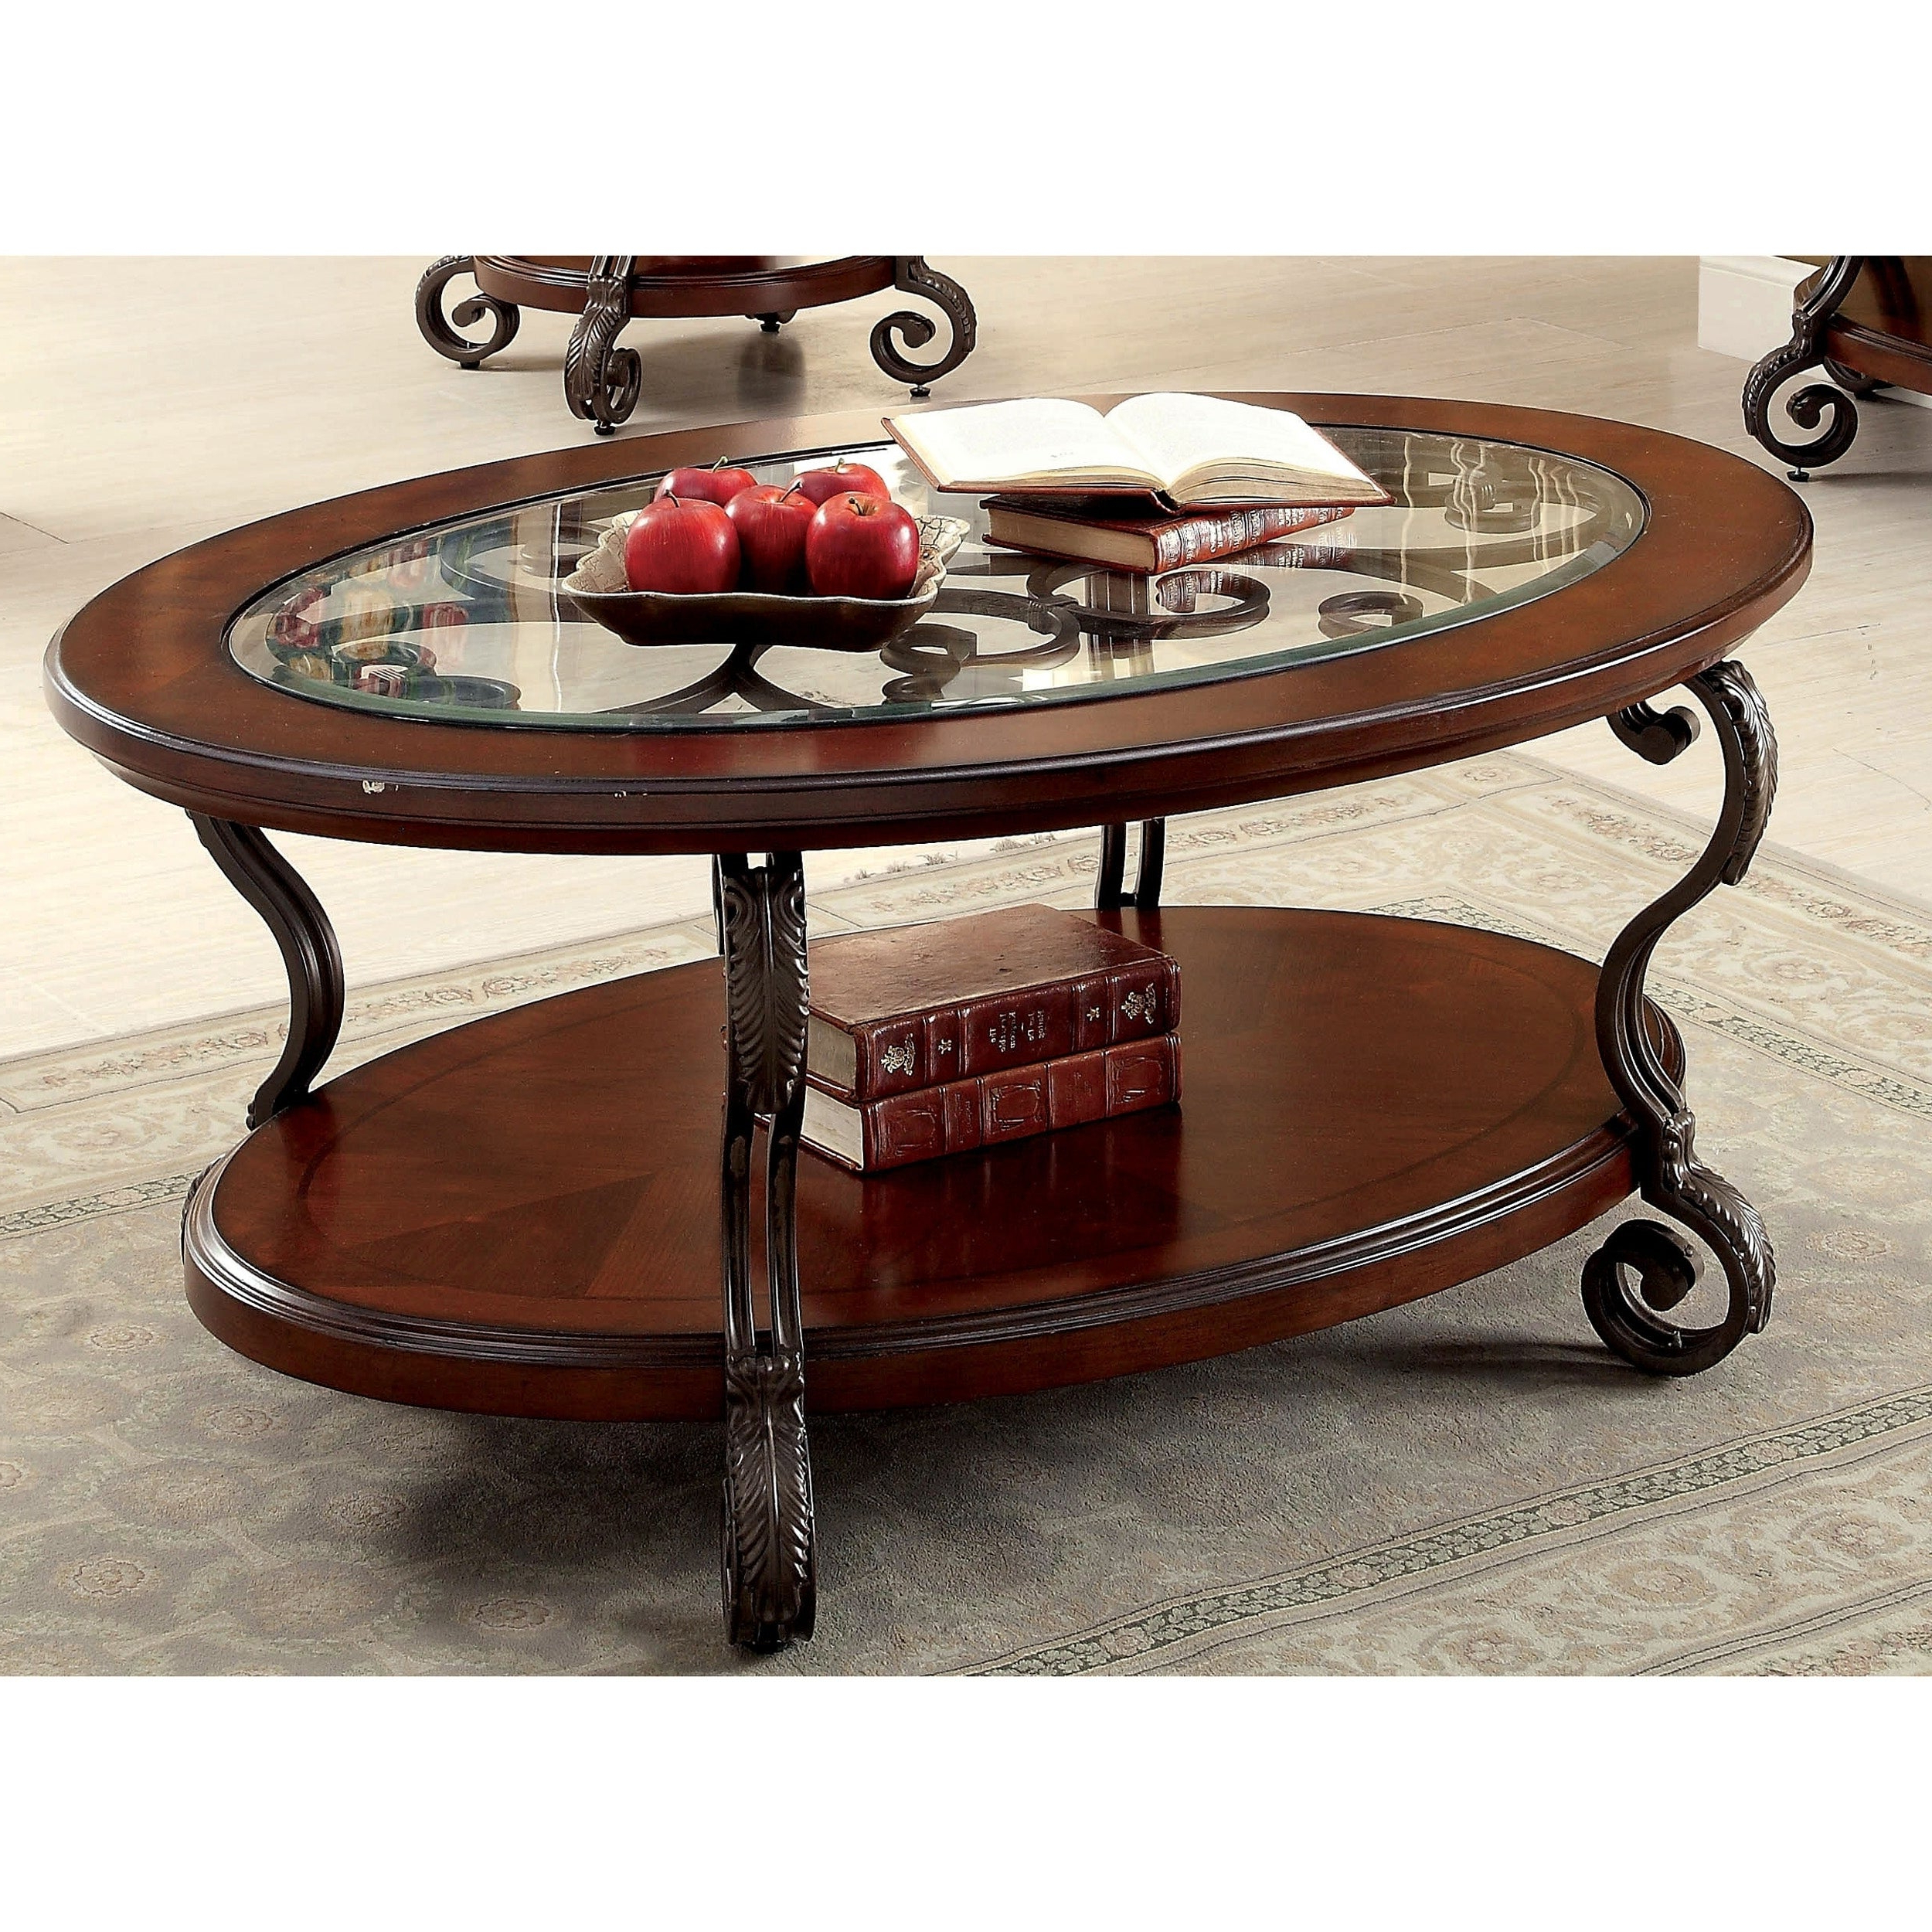 Cohler Traditional Brown Cherry Oval Coffee Tablefoa In Well Known Cohler Traditional Brown Cherry Oval Coffee Tables (View 7 of 20)